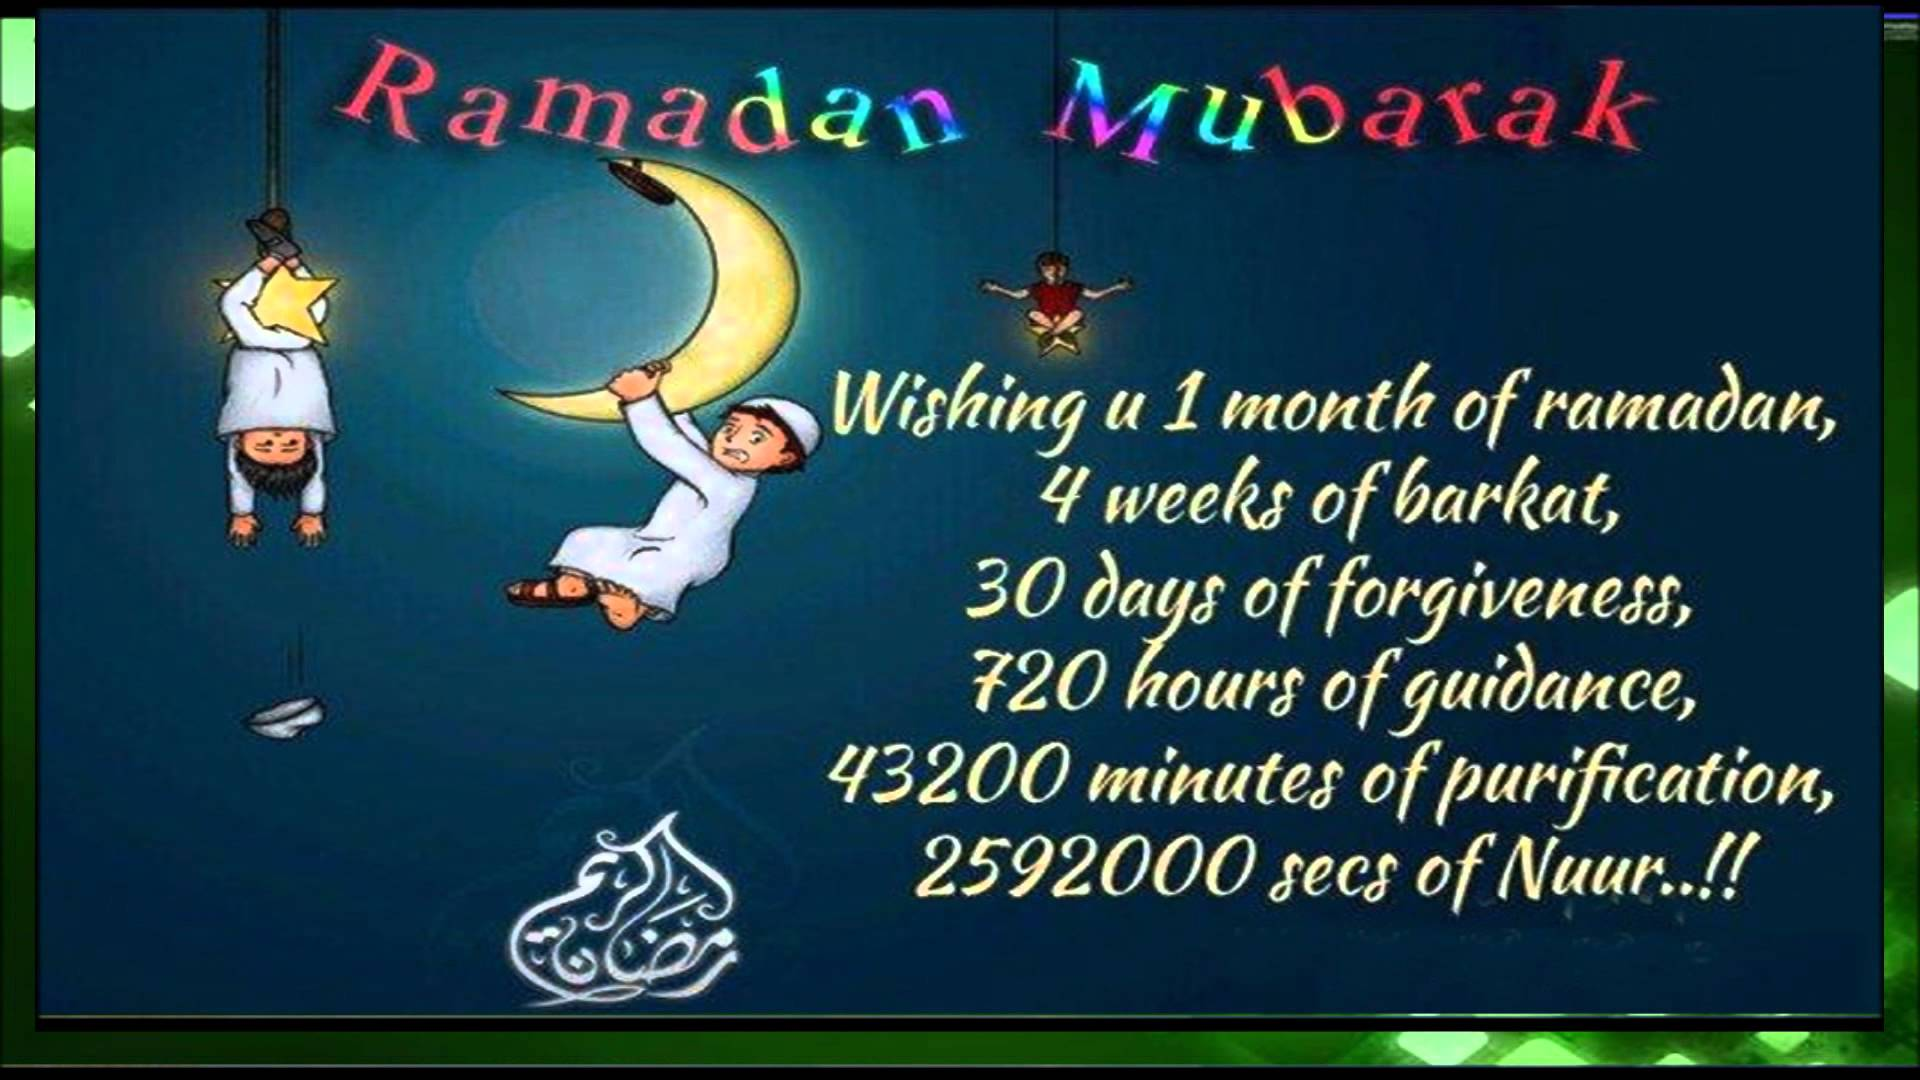 Happy Ramadan Messages For Facebook And Whatsapp